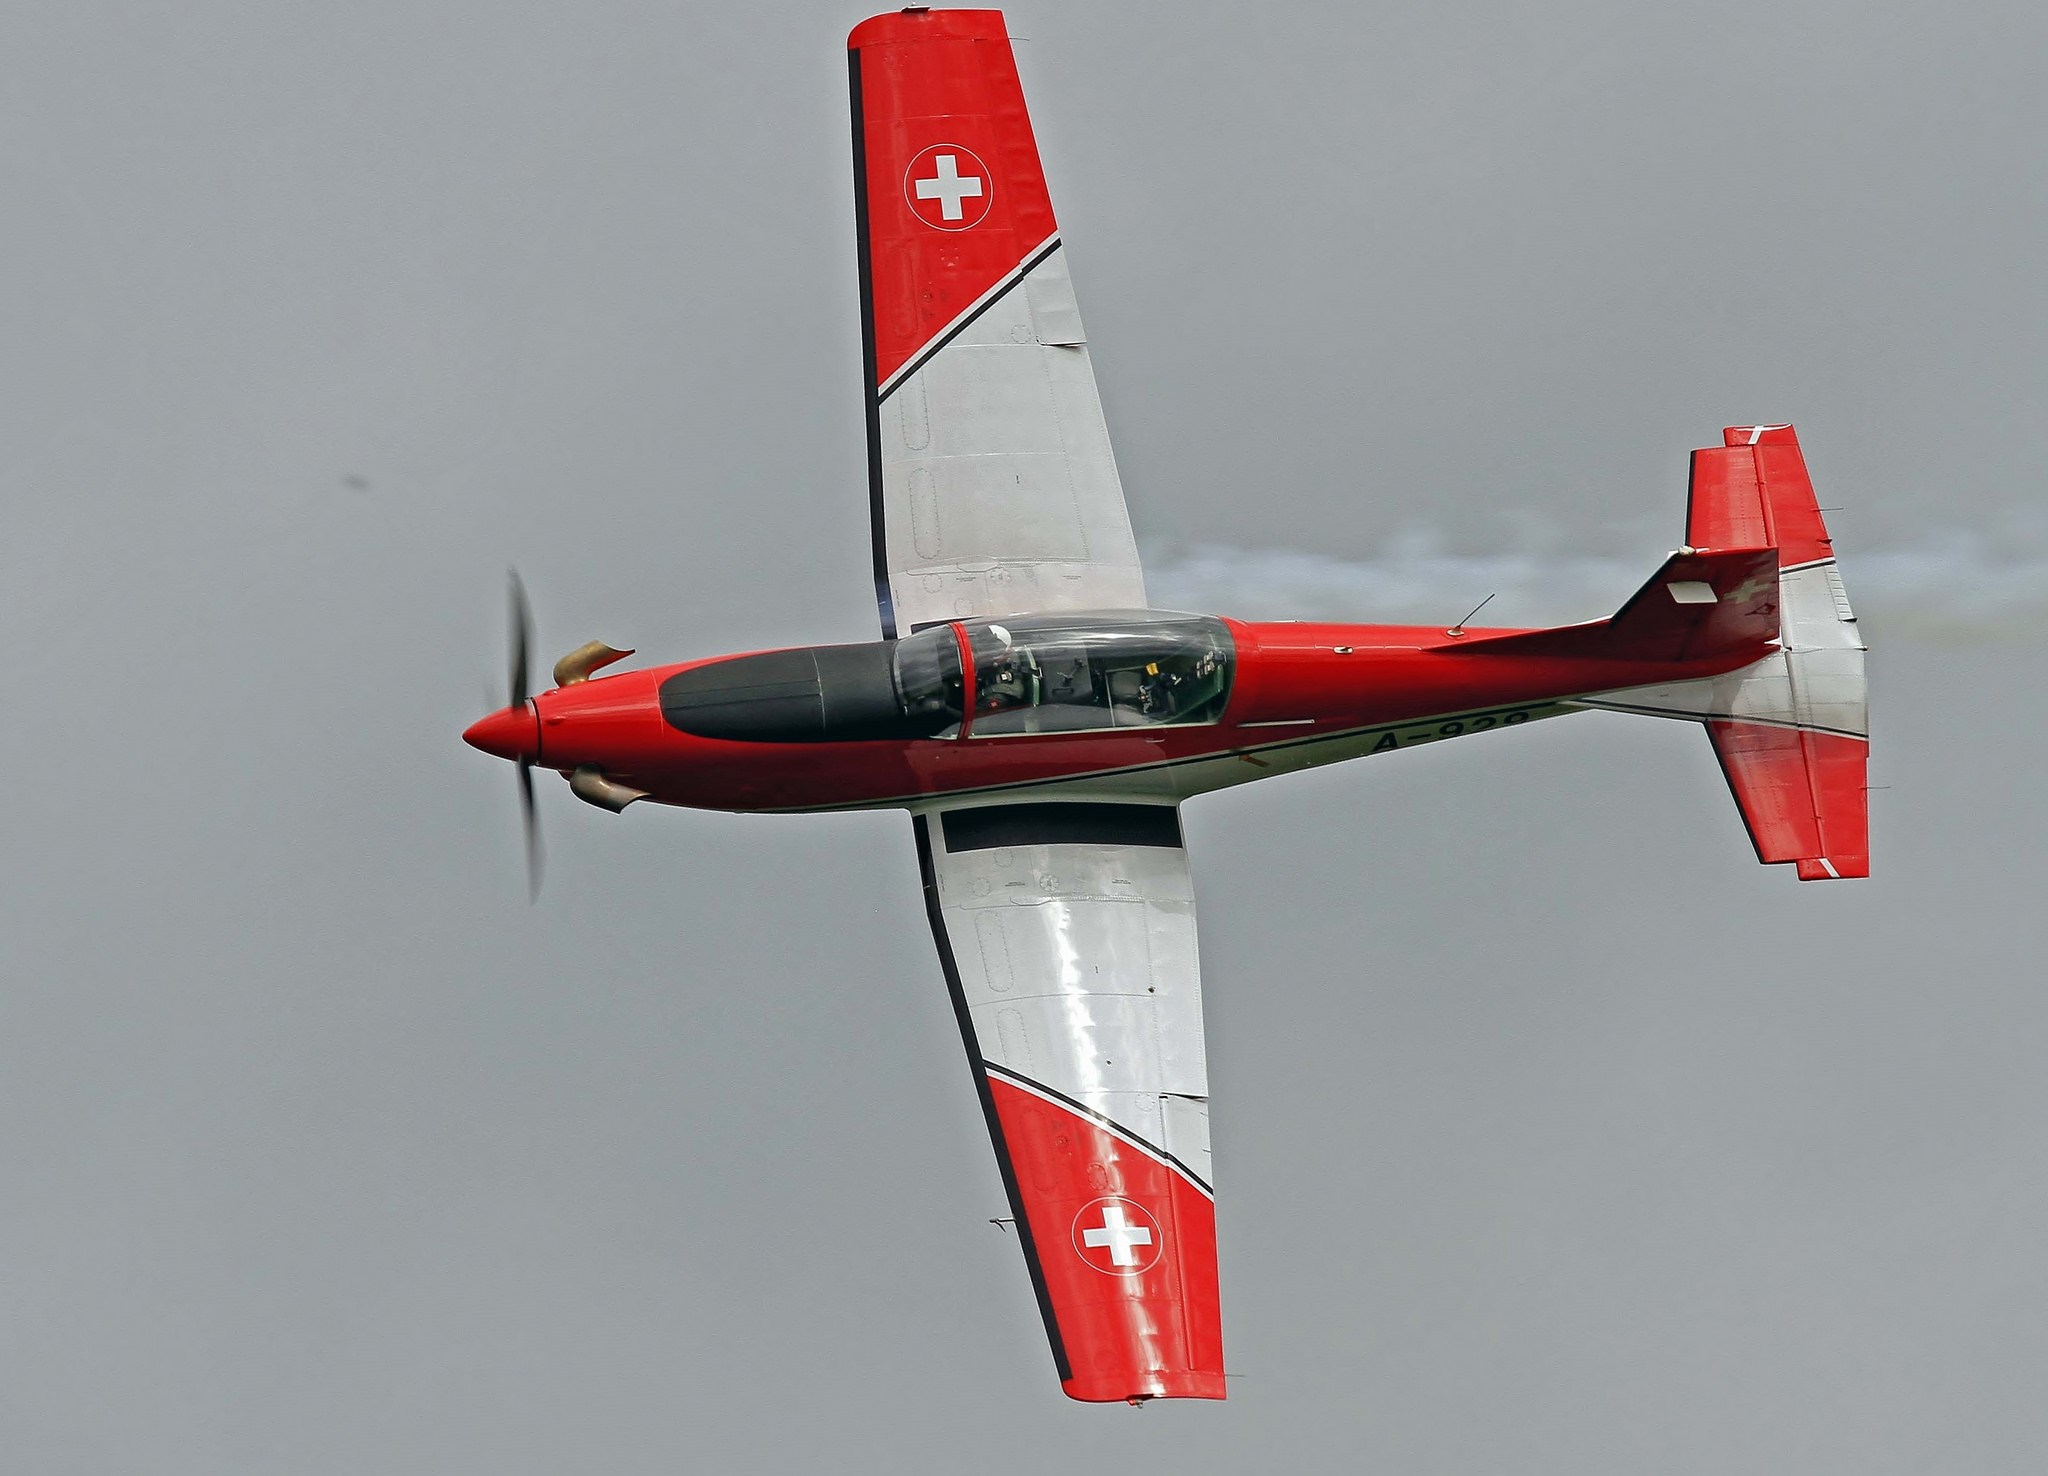 Swiss Air Force PC-7 TEAM Pilatus Turbo Trainer at Scotland's National Airshow 2016  © toowoomba surfer on Flickr